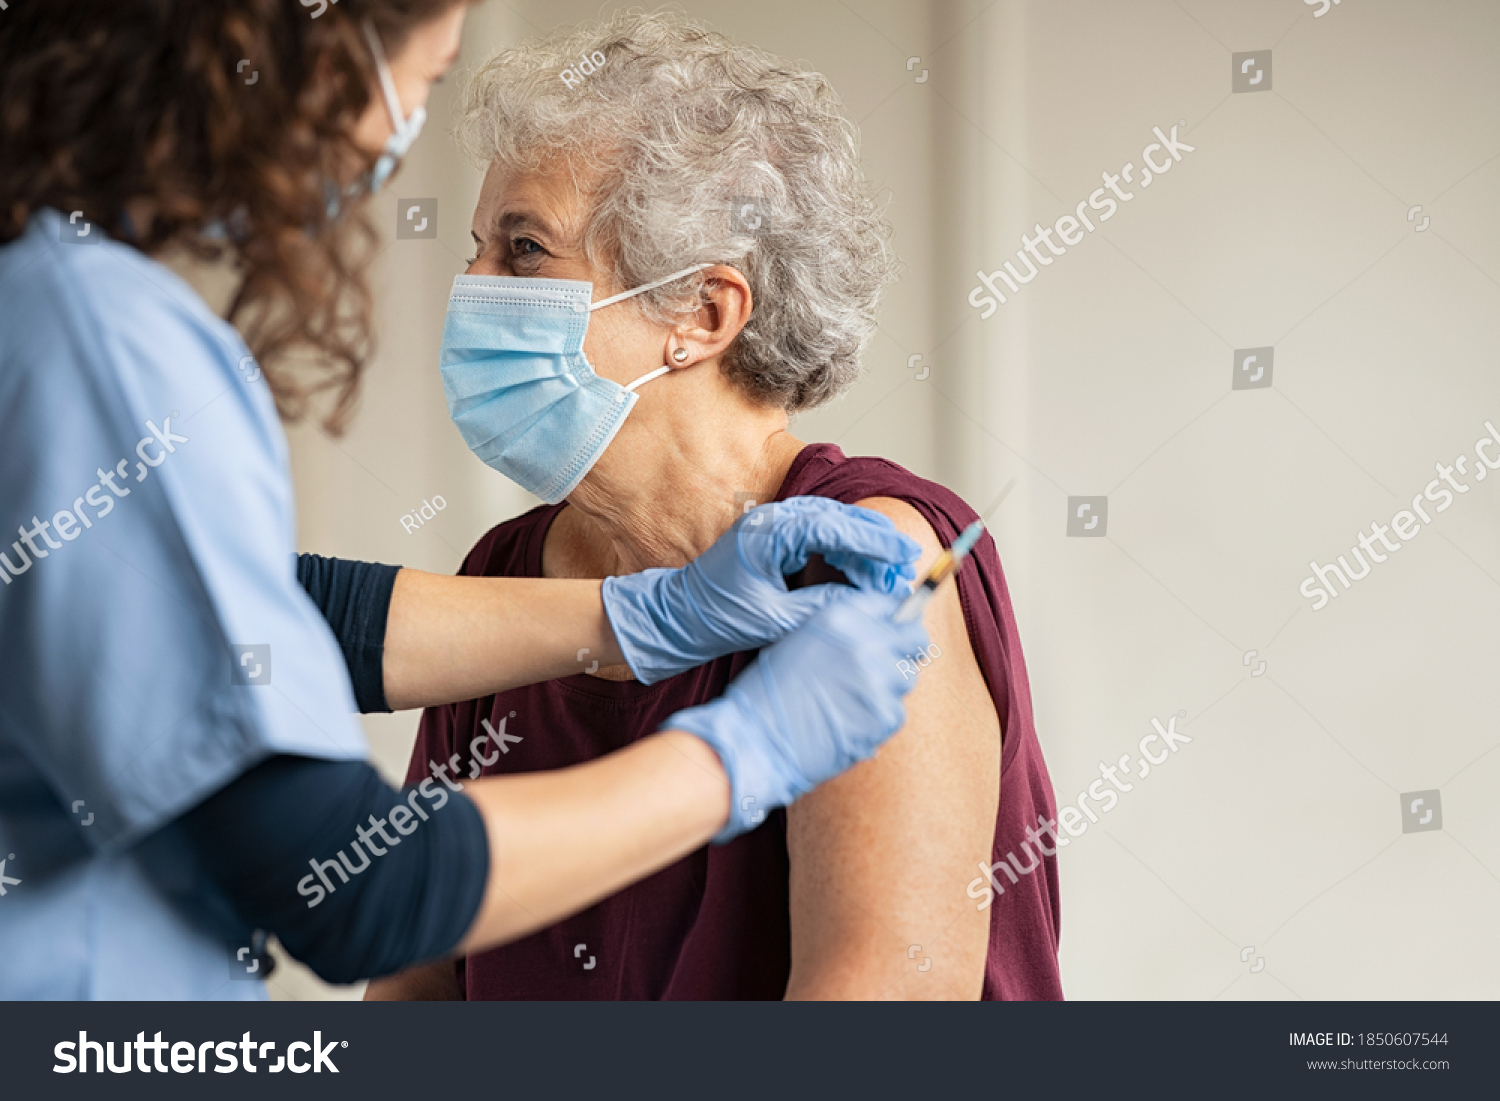 General practitioner vaccinating old patient in clinic with copy space. Doctor giving injection to senior woman at hospital. Nurse holding syringe before make Covid-19 or coronavirus vaccine. #1850607544